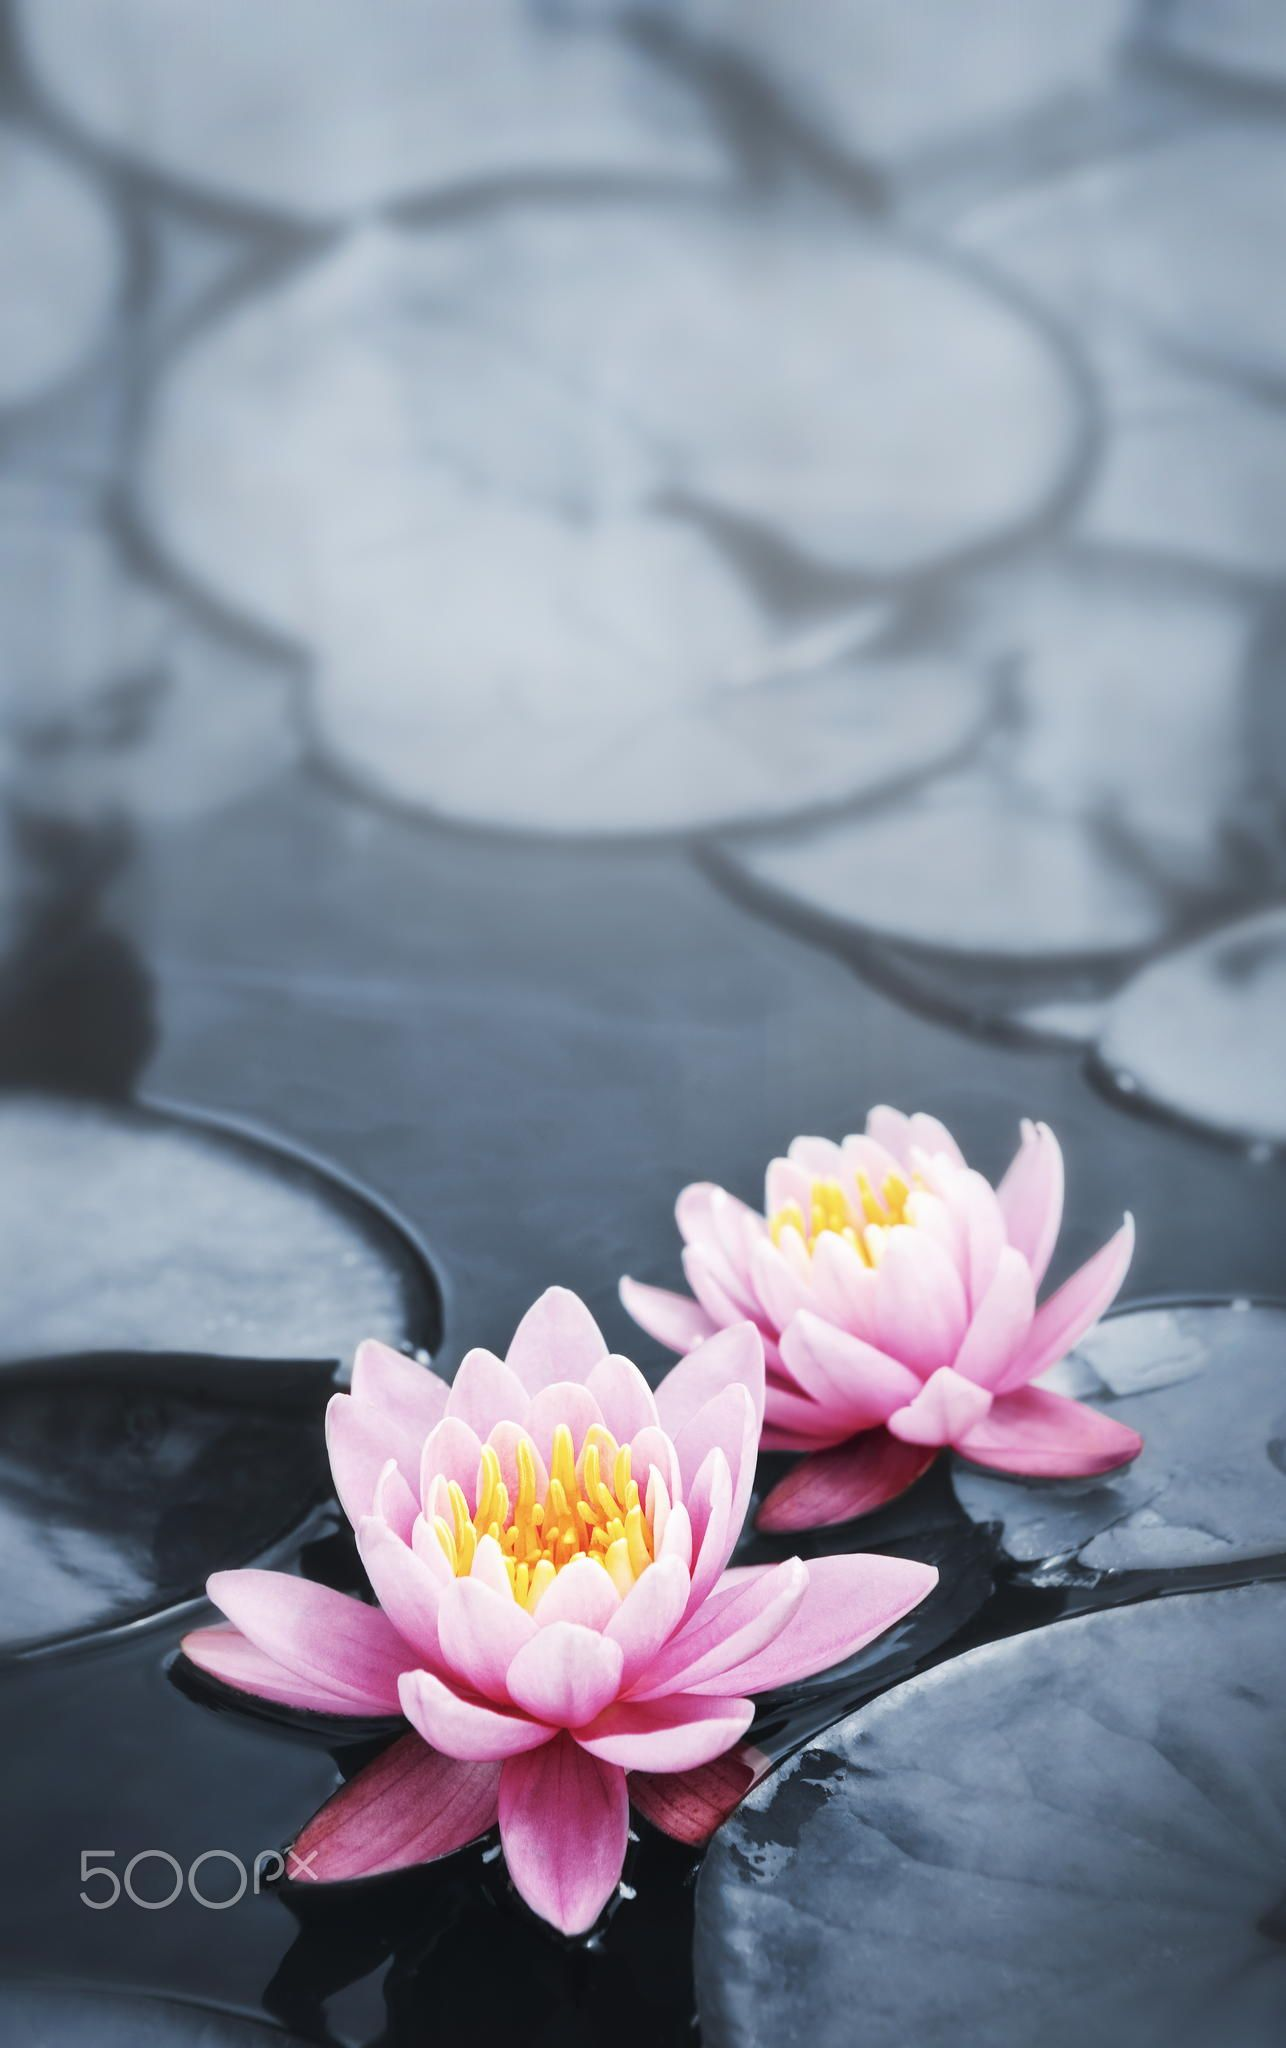 Lotus Blossoms Pink Lotus Blossoms Or Water Lily Flowers Blooming